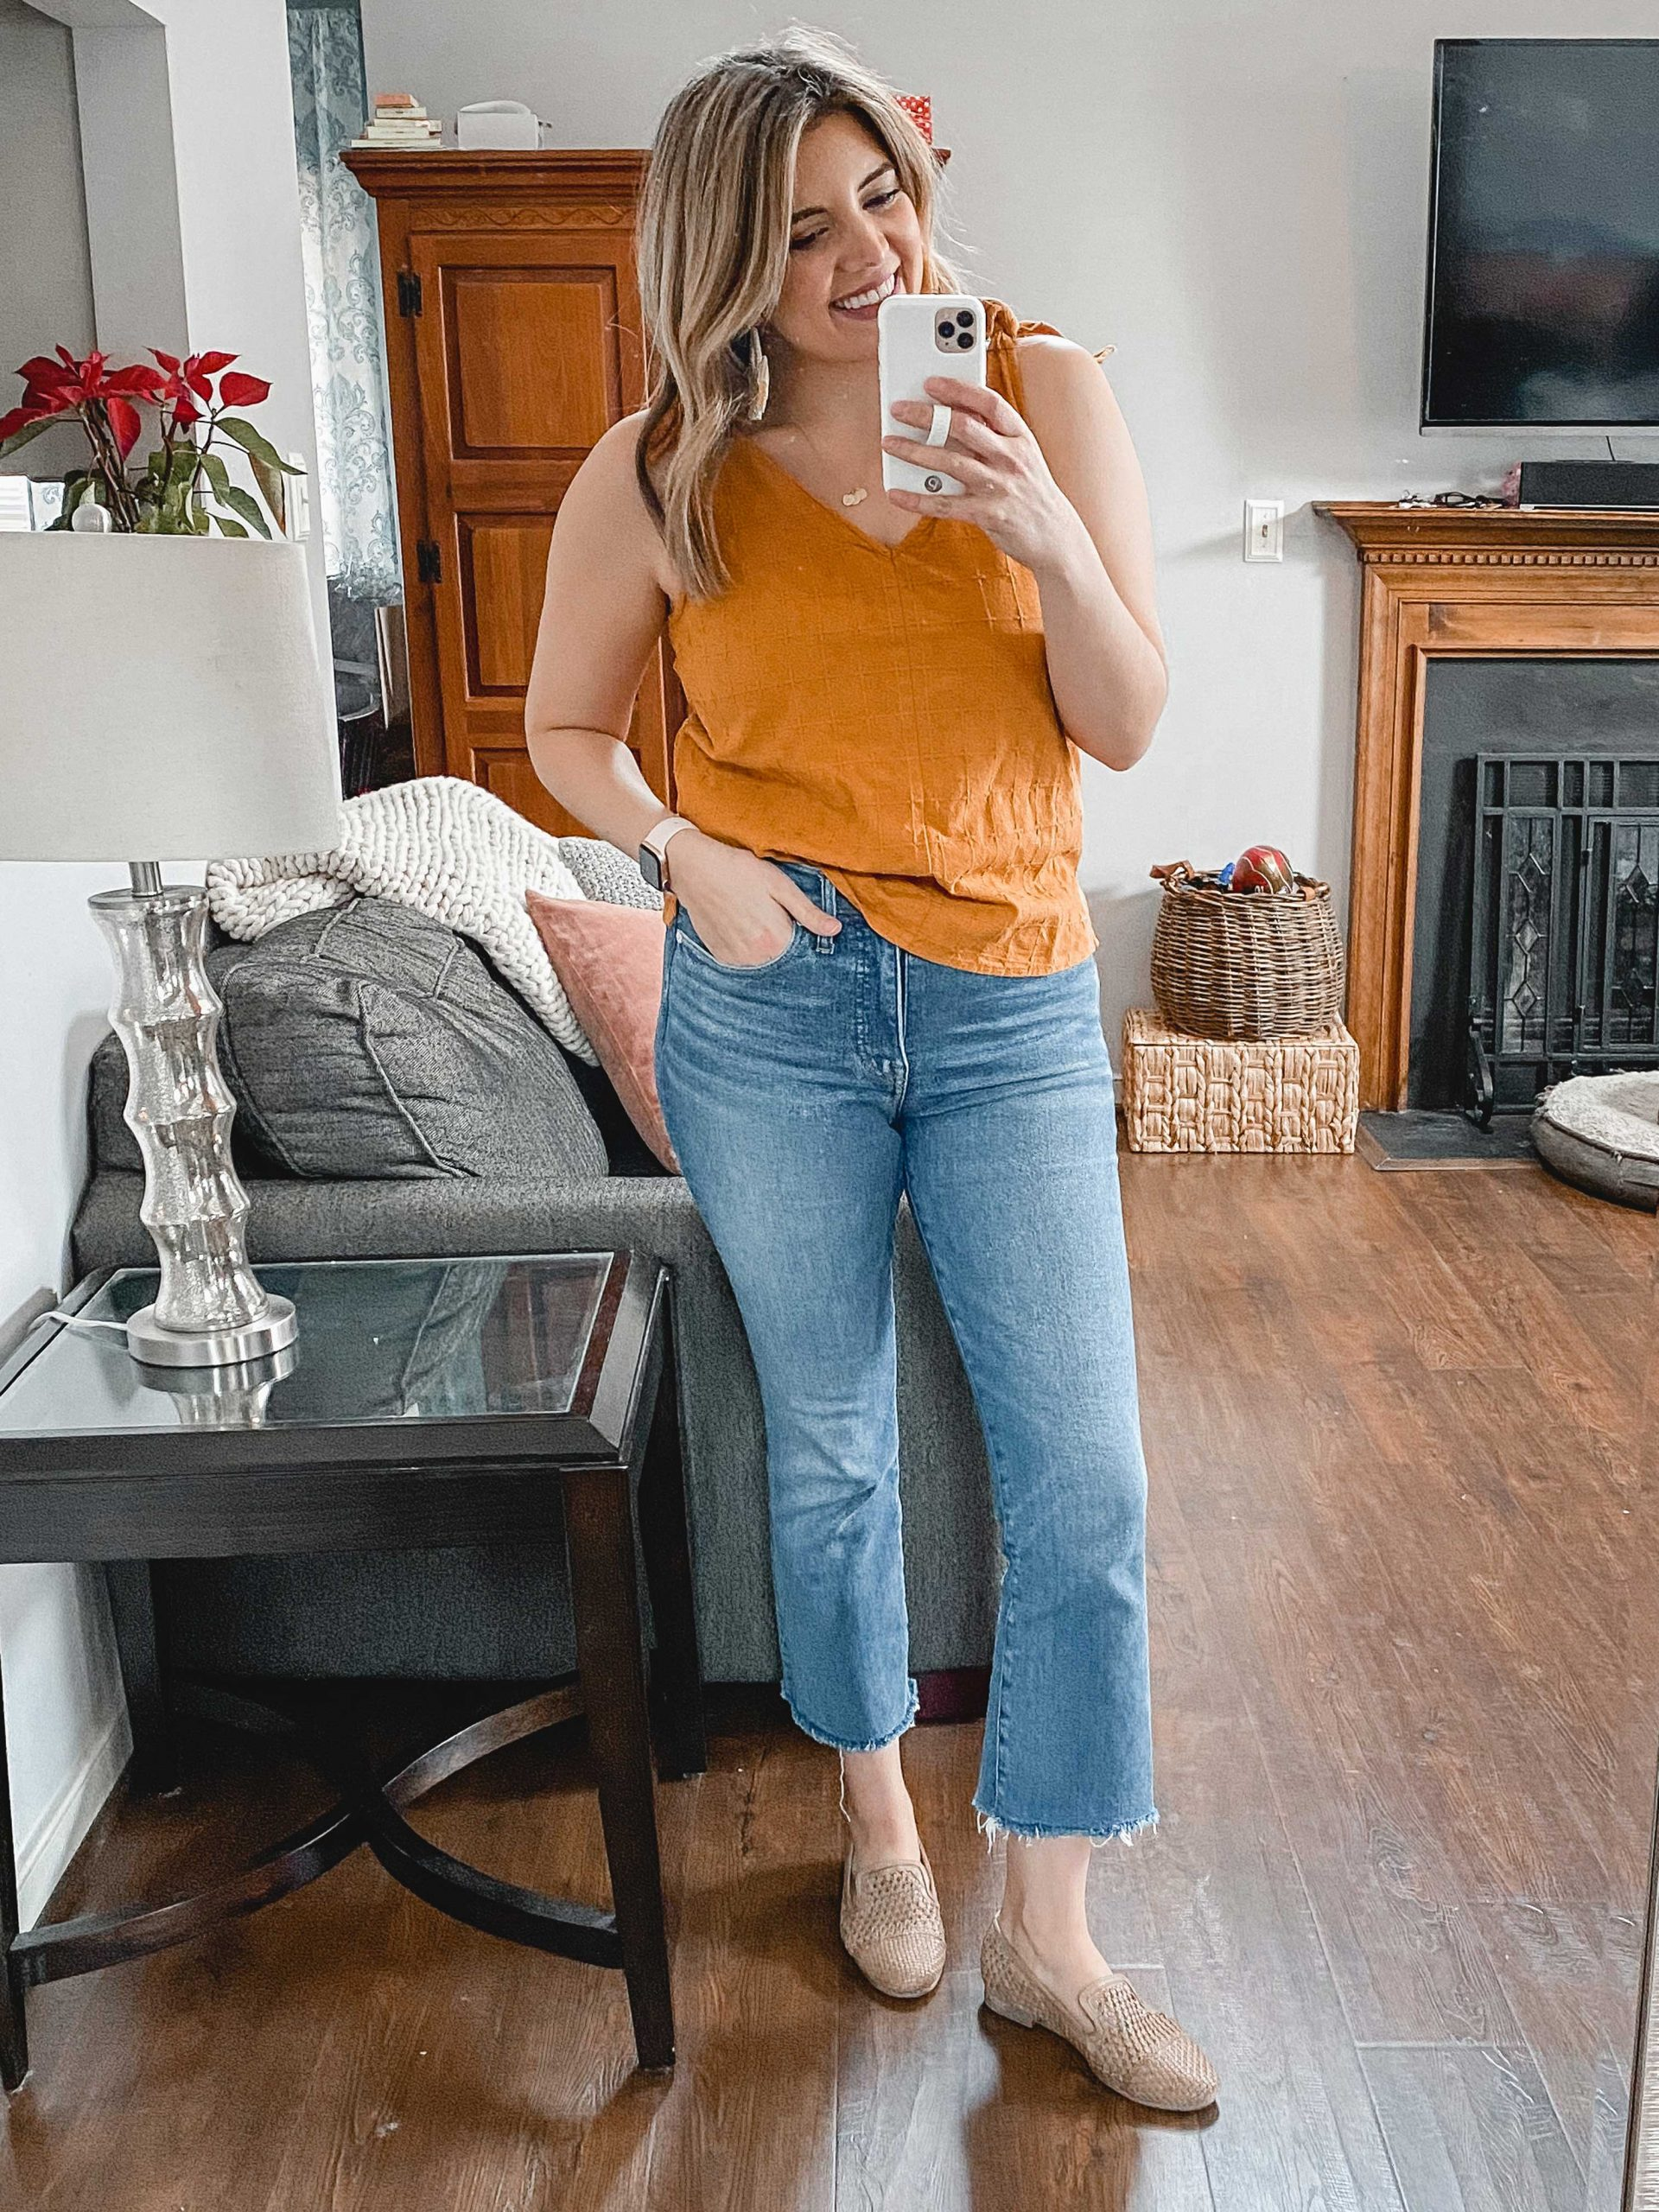 Virginia blogger, Lauren Dix, shares her favorite Amazon vacation finds! Amazon dresses, sandals, coverups, and more!